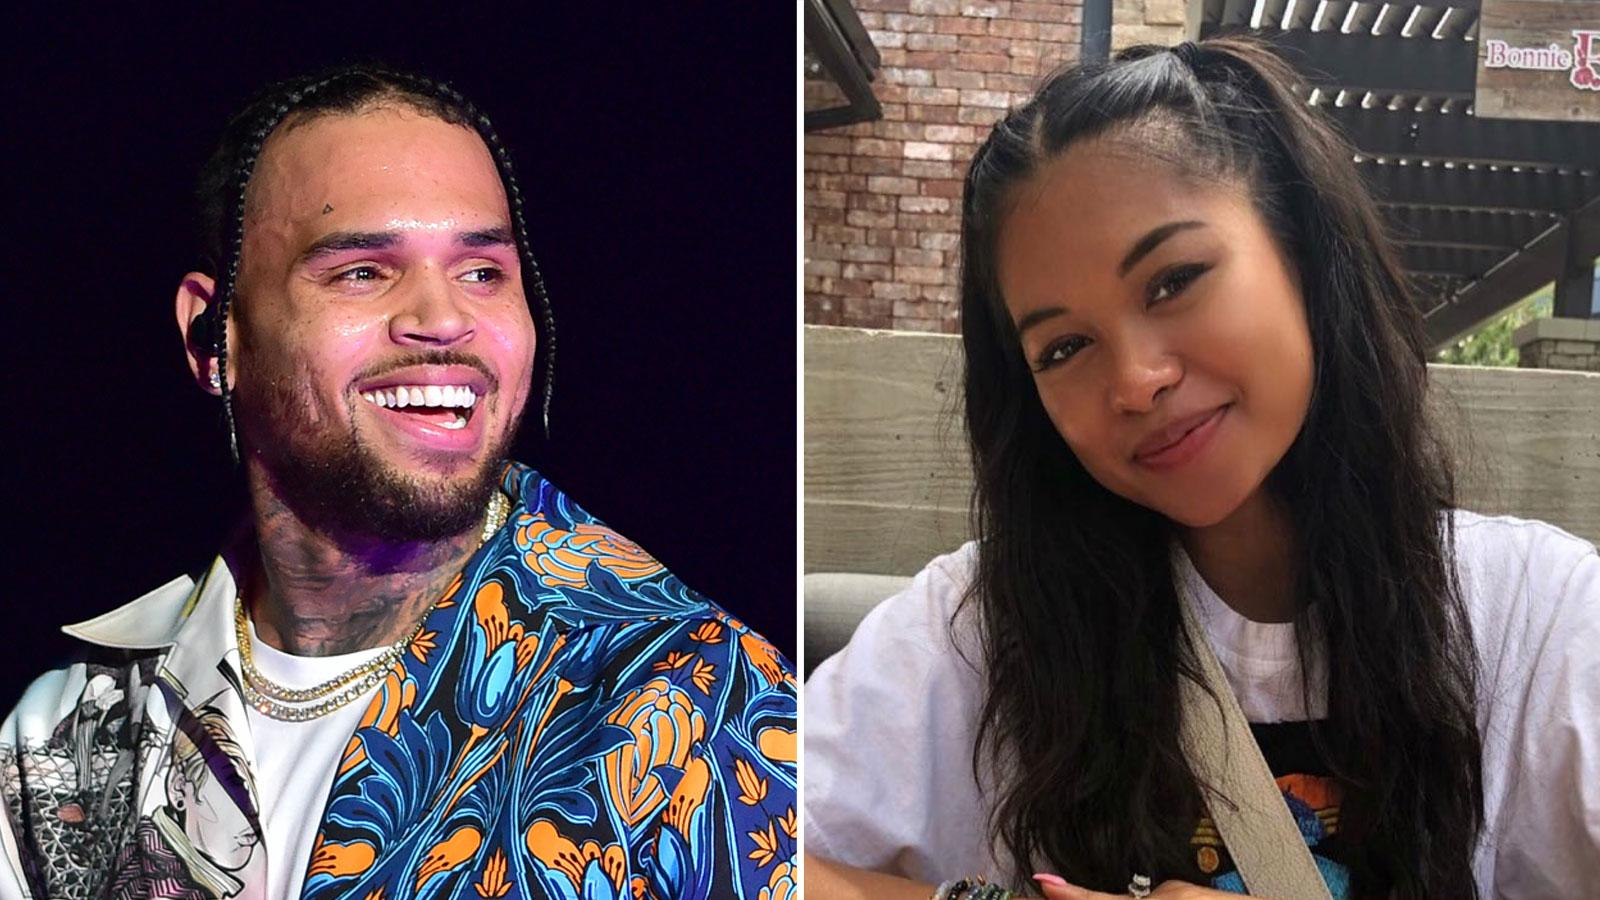 Ammika Harris Gushes Over 'GOAT' Chris Brown After He Also Flirted With Her!